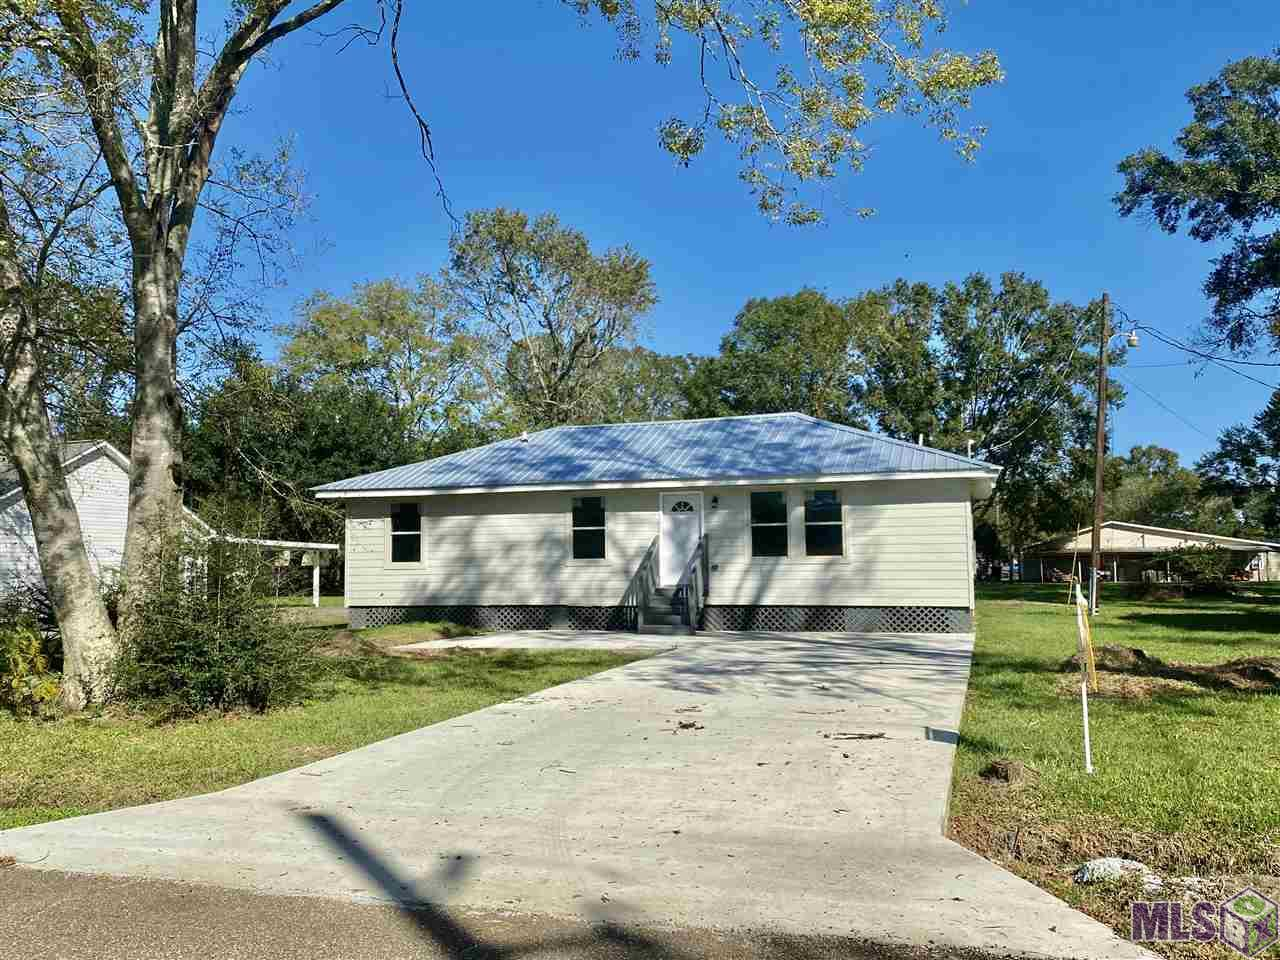 "COMPLETELY RENOVATED 3BR/2BTH on .412 acre lot!!! Rural setting -great location off HWY 621 - quiet dead-end street. Flood zone ""X"" - NO FLOOD INSURANCE REQUIRED!!  Beautiful master suite includes a spacious master bath featuring a double vanity, water closet, soaker tub and walk-in closet. Beautiful Vinyl Plank Flooring throughout. On demand hot water heater Did not flood!! Awesome Ascension schools (Central Primary & Middle, EA High - as per www.apsb.org)"